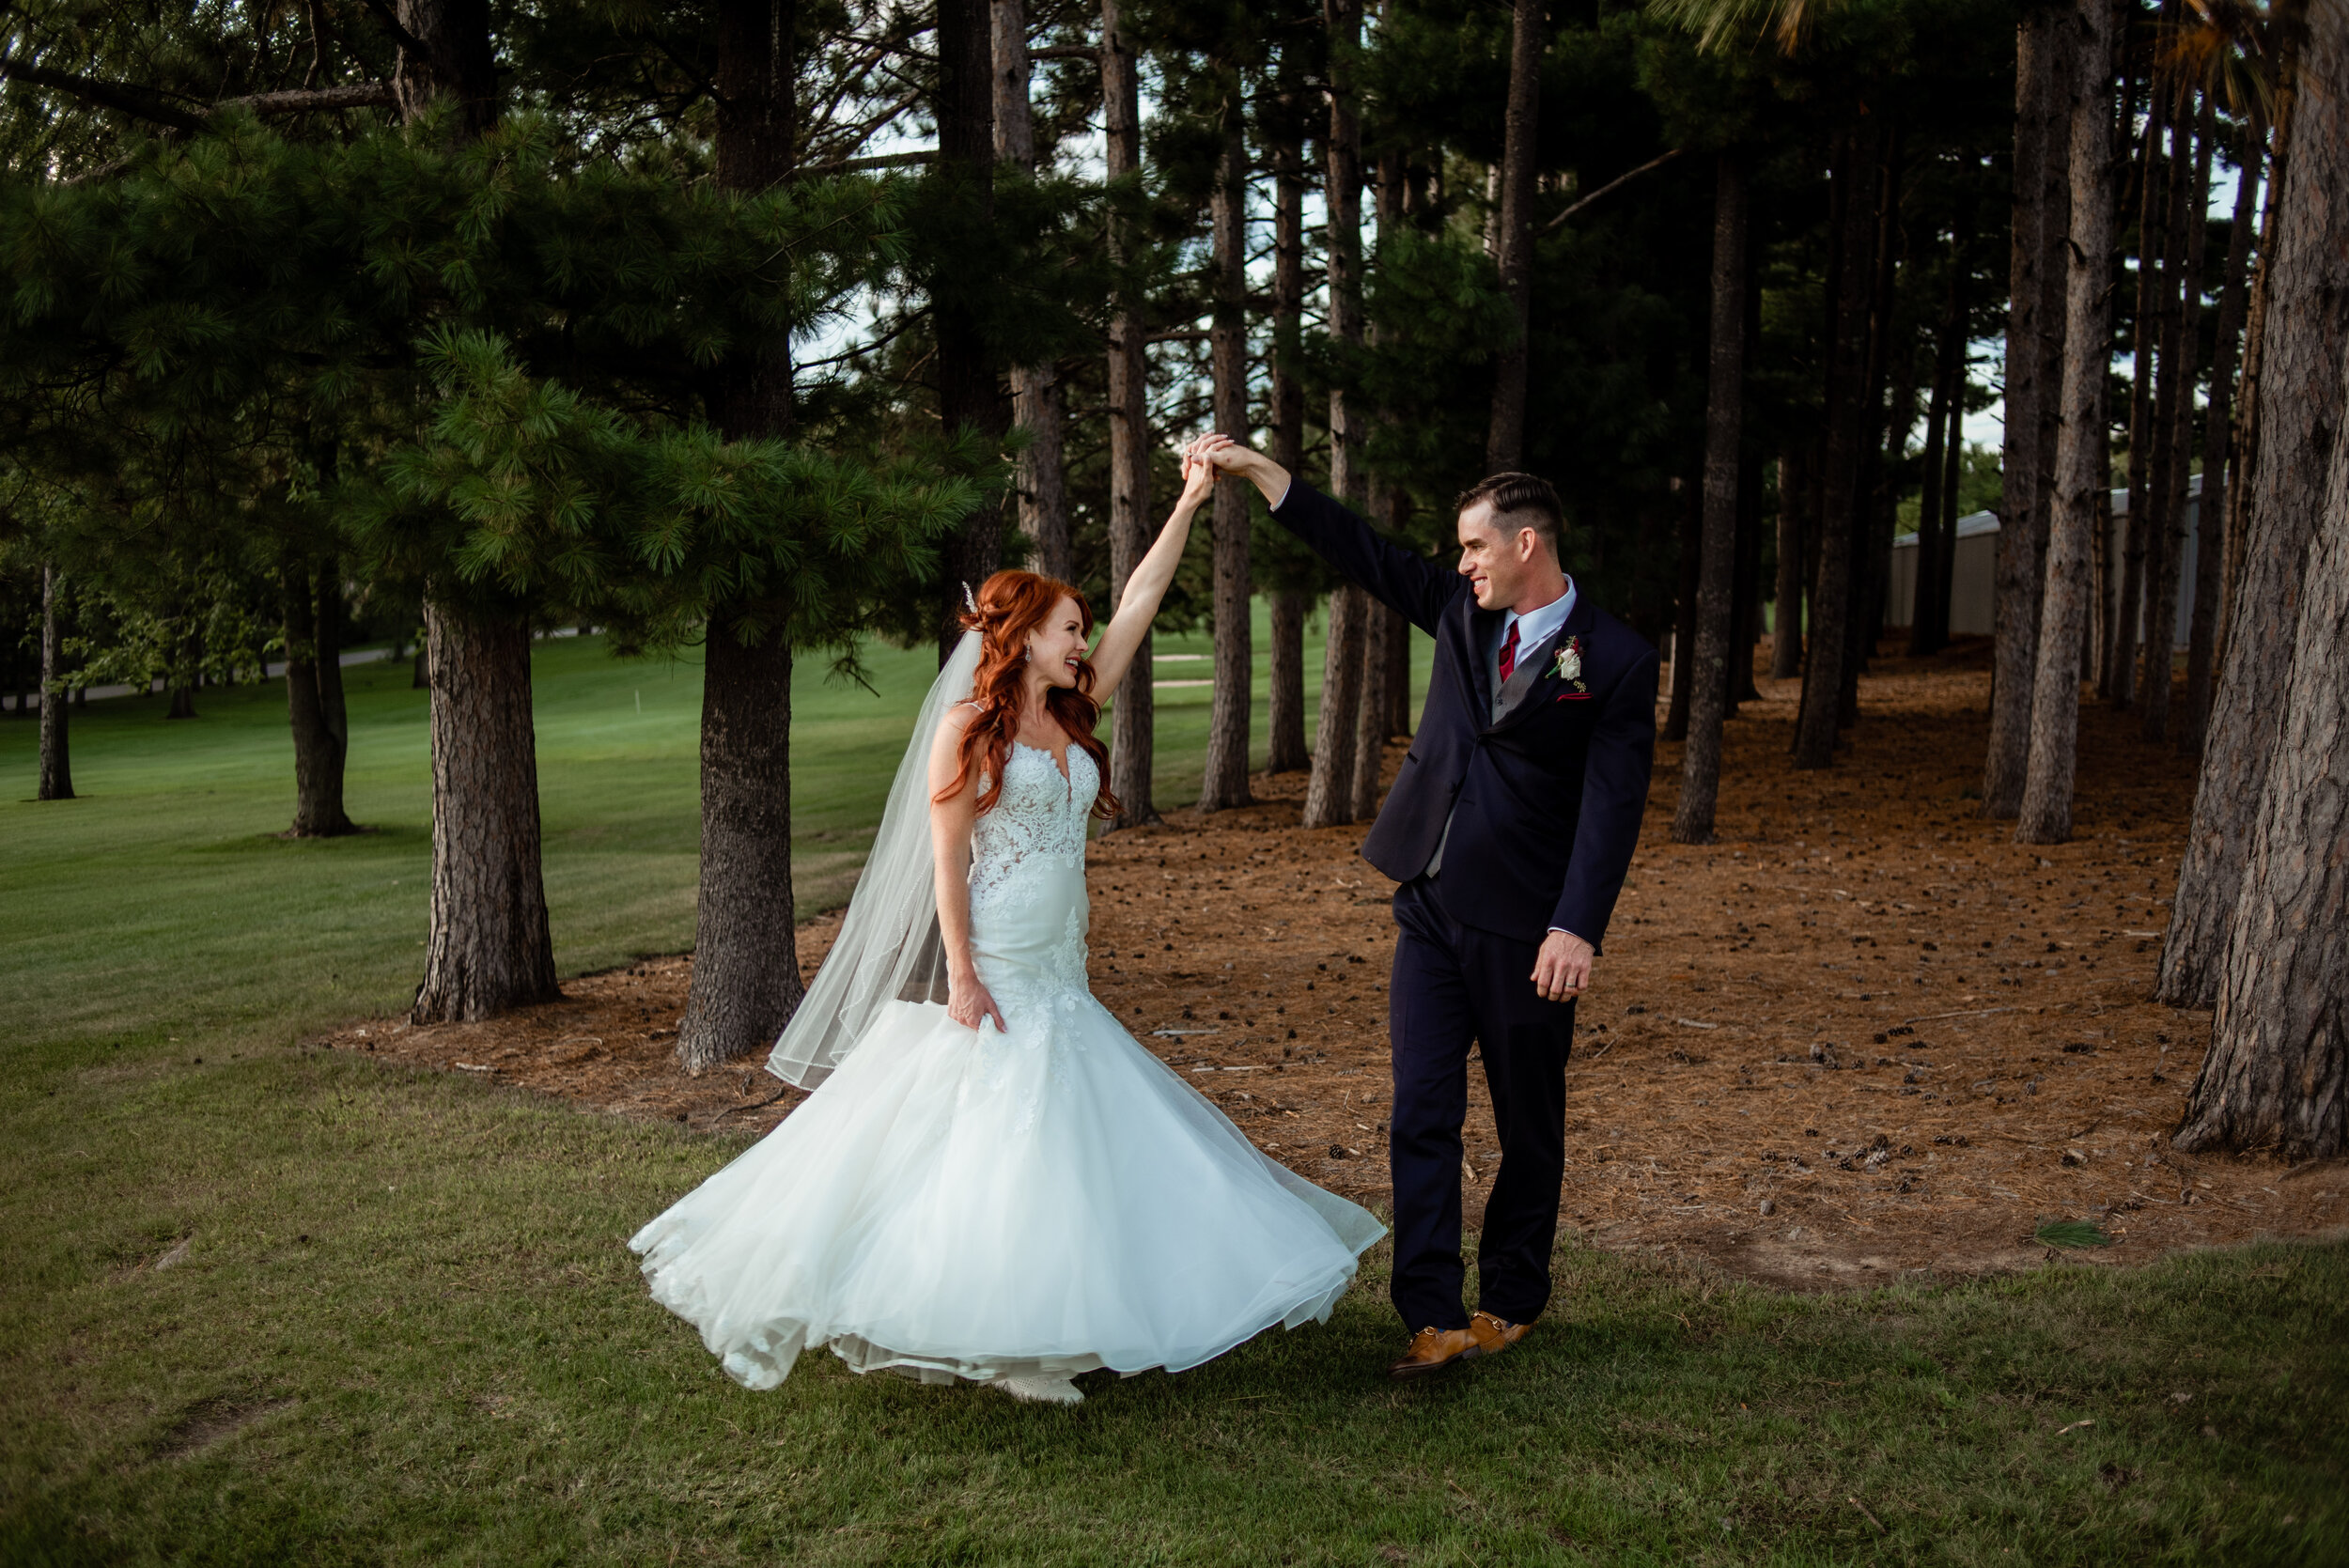 Reedsburg Country Club - Victoria Matteo Photography